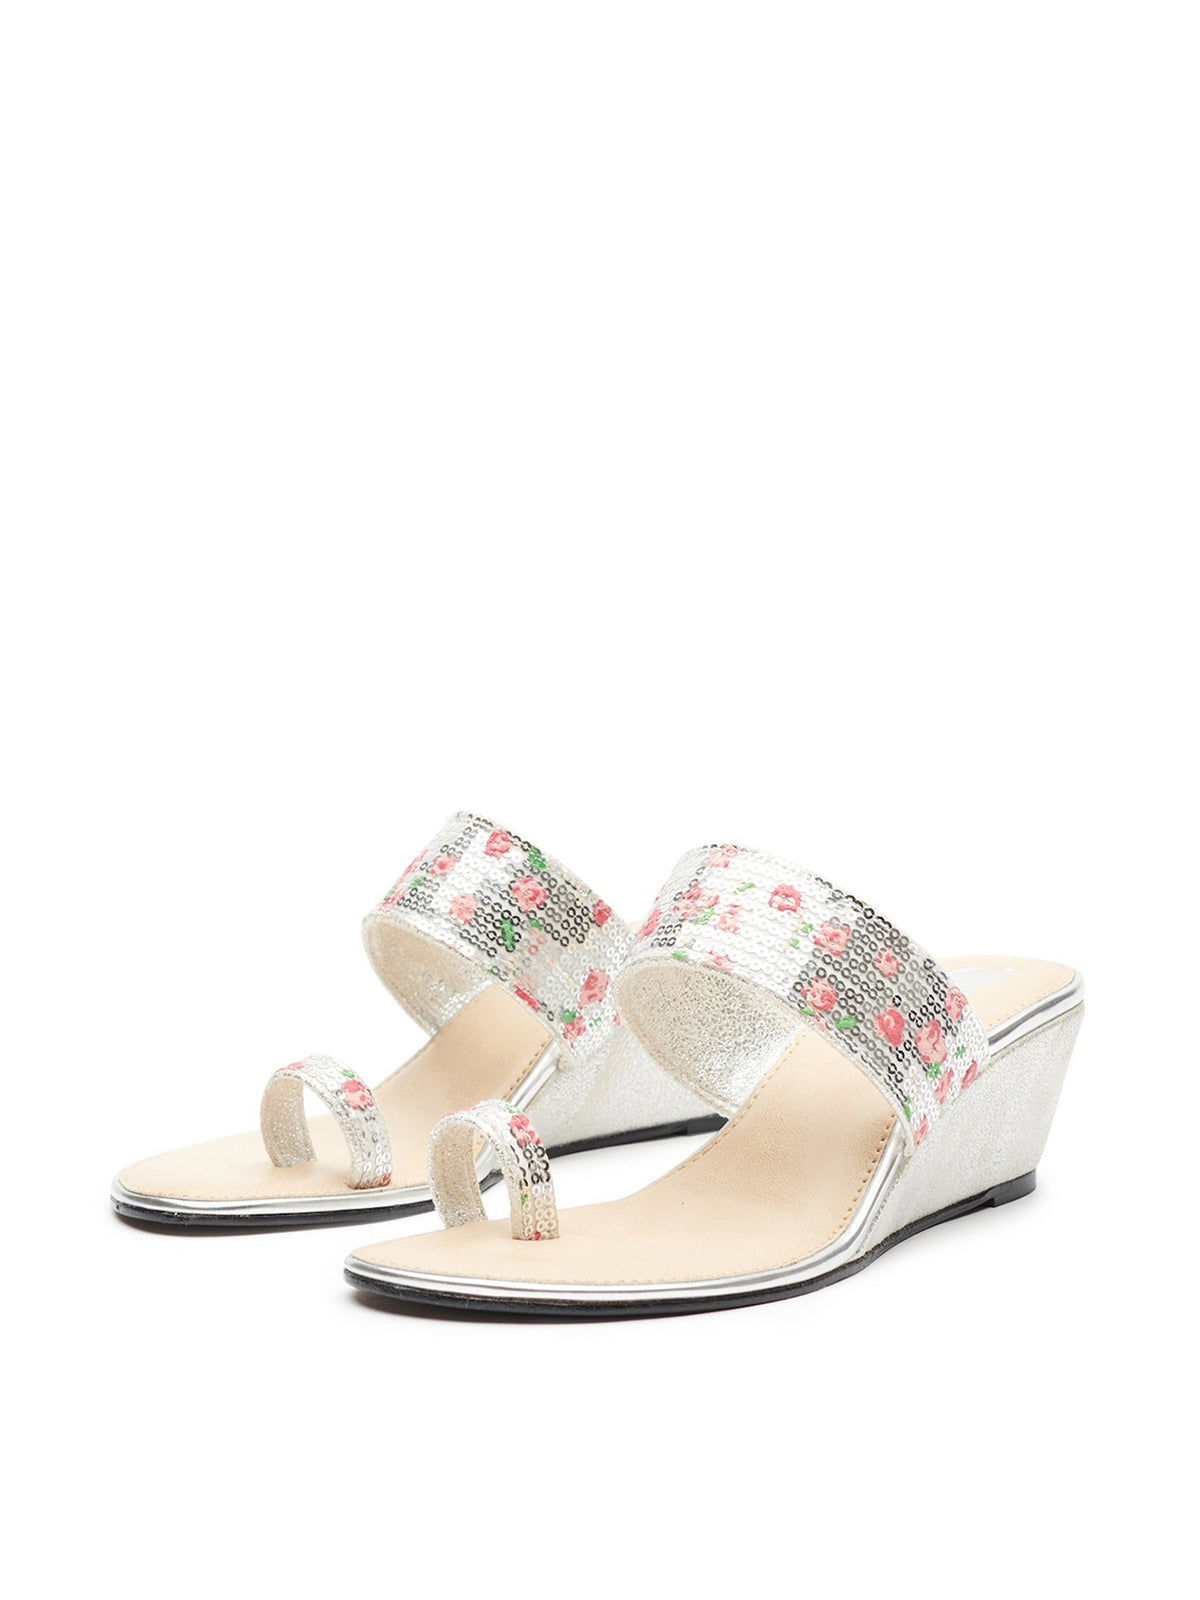 Sequinned Floral Toe Ring Slide